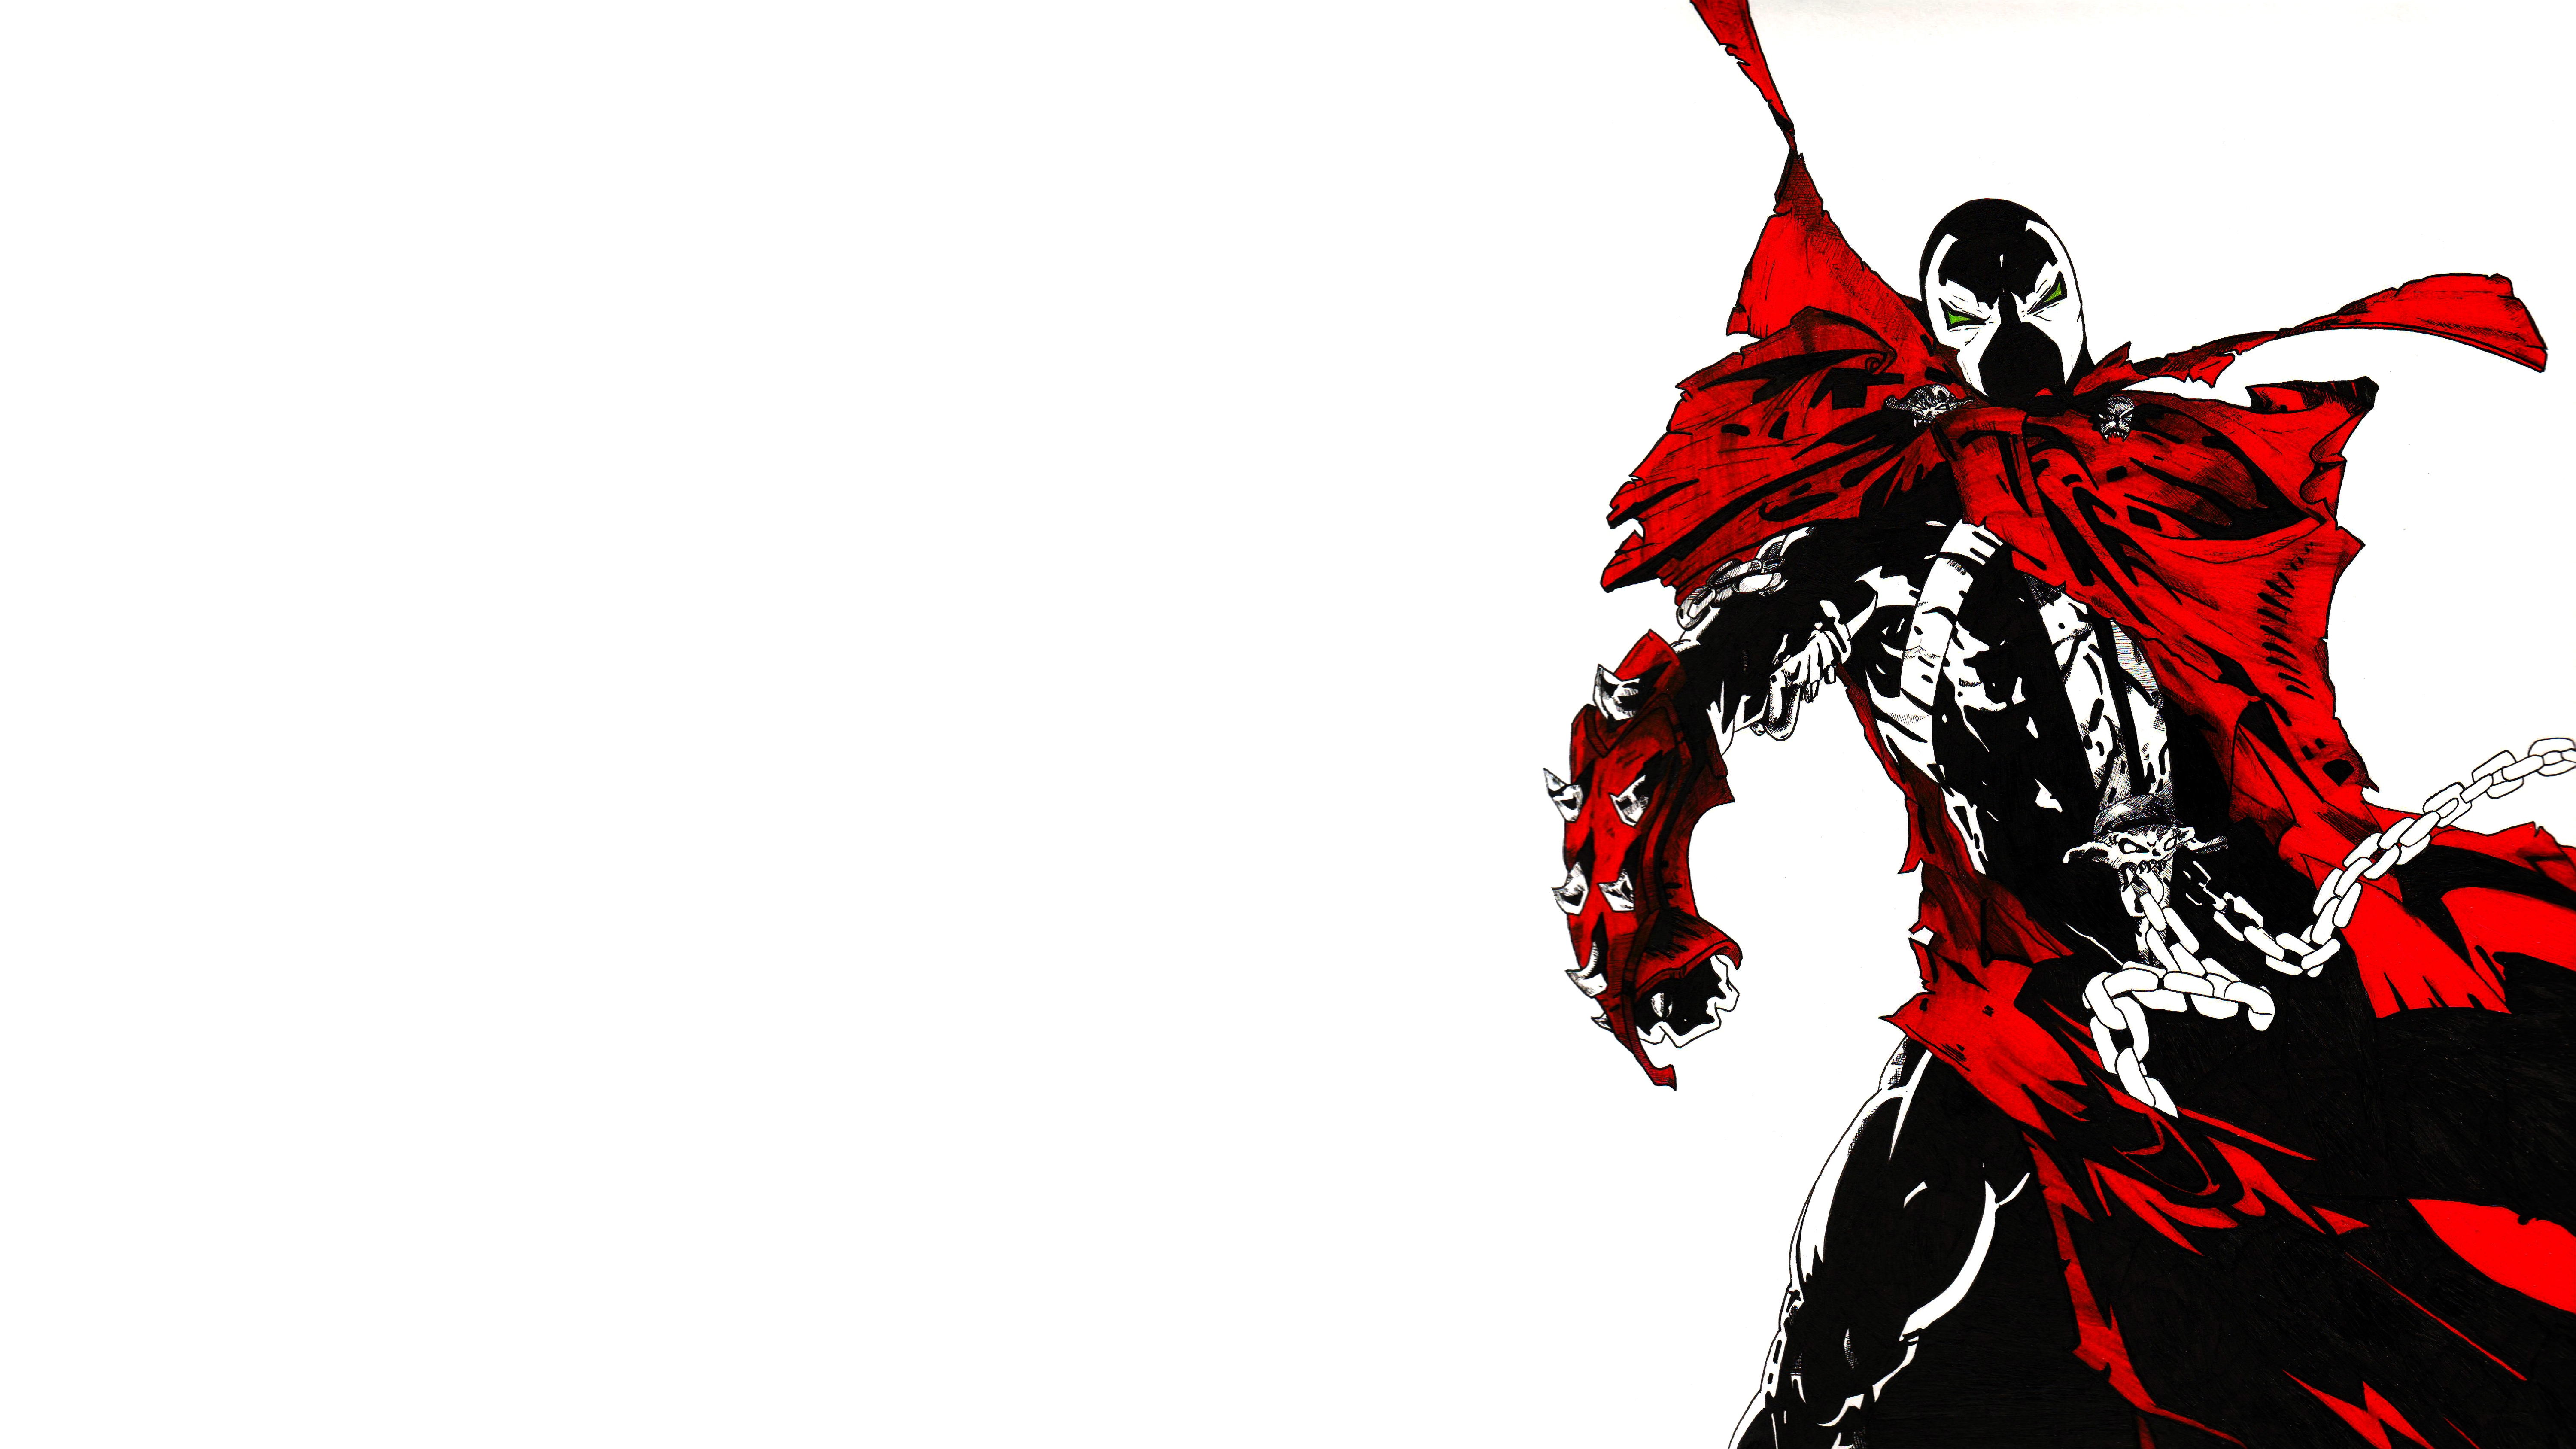 spawn wallpapers 1920x1080 - photo #41